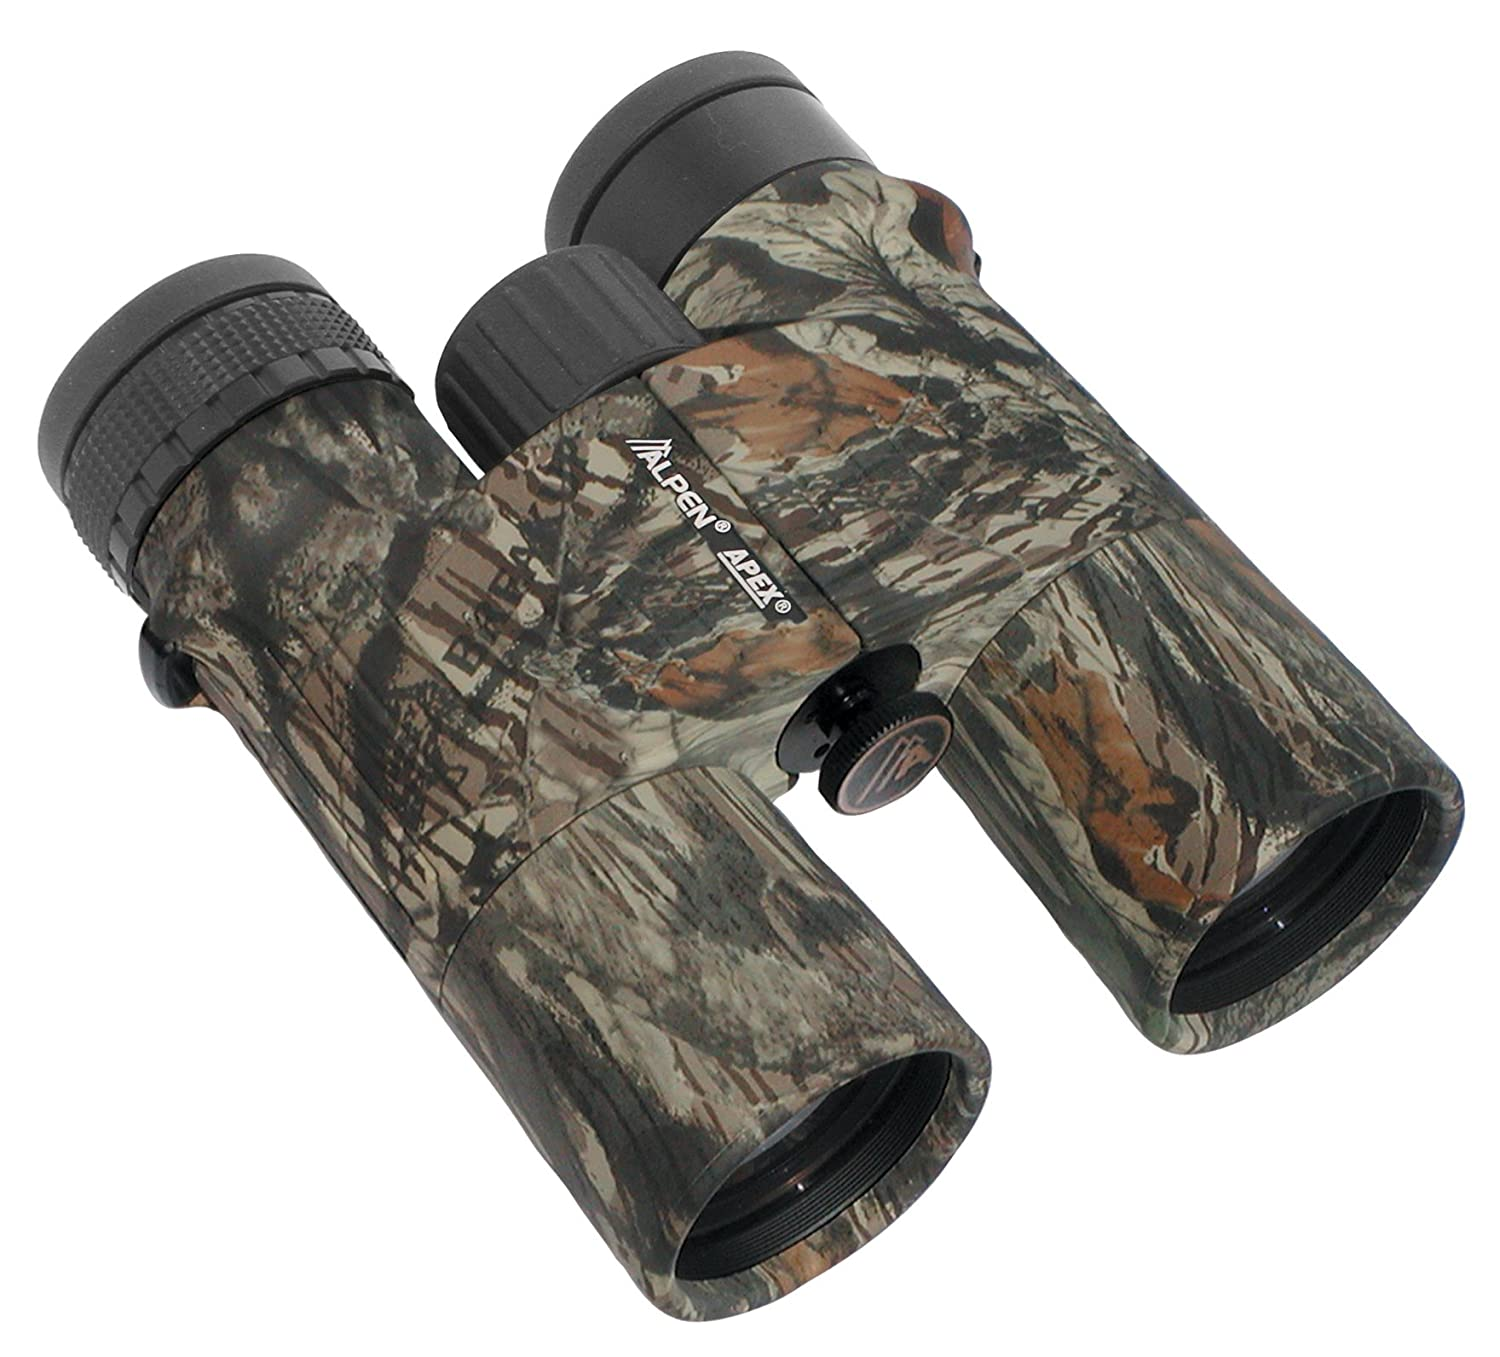 Alpen Optics APEX XP 10X42 Waterproof, Fully Multi Coated, BaK4 Long Eye Relief Roof Prism Mossy Oak Camo Binocular